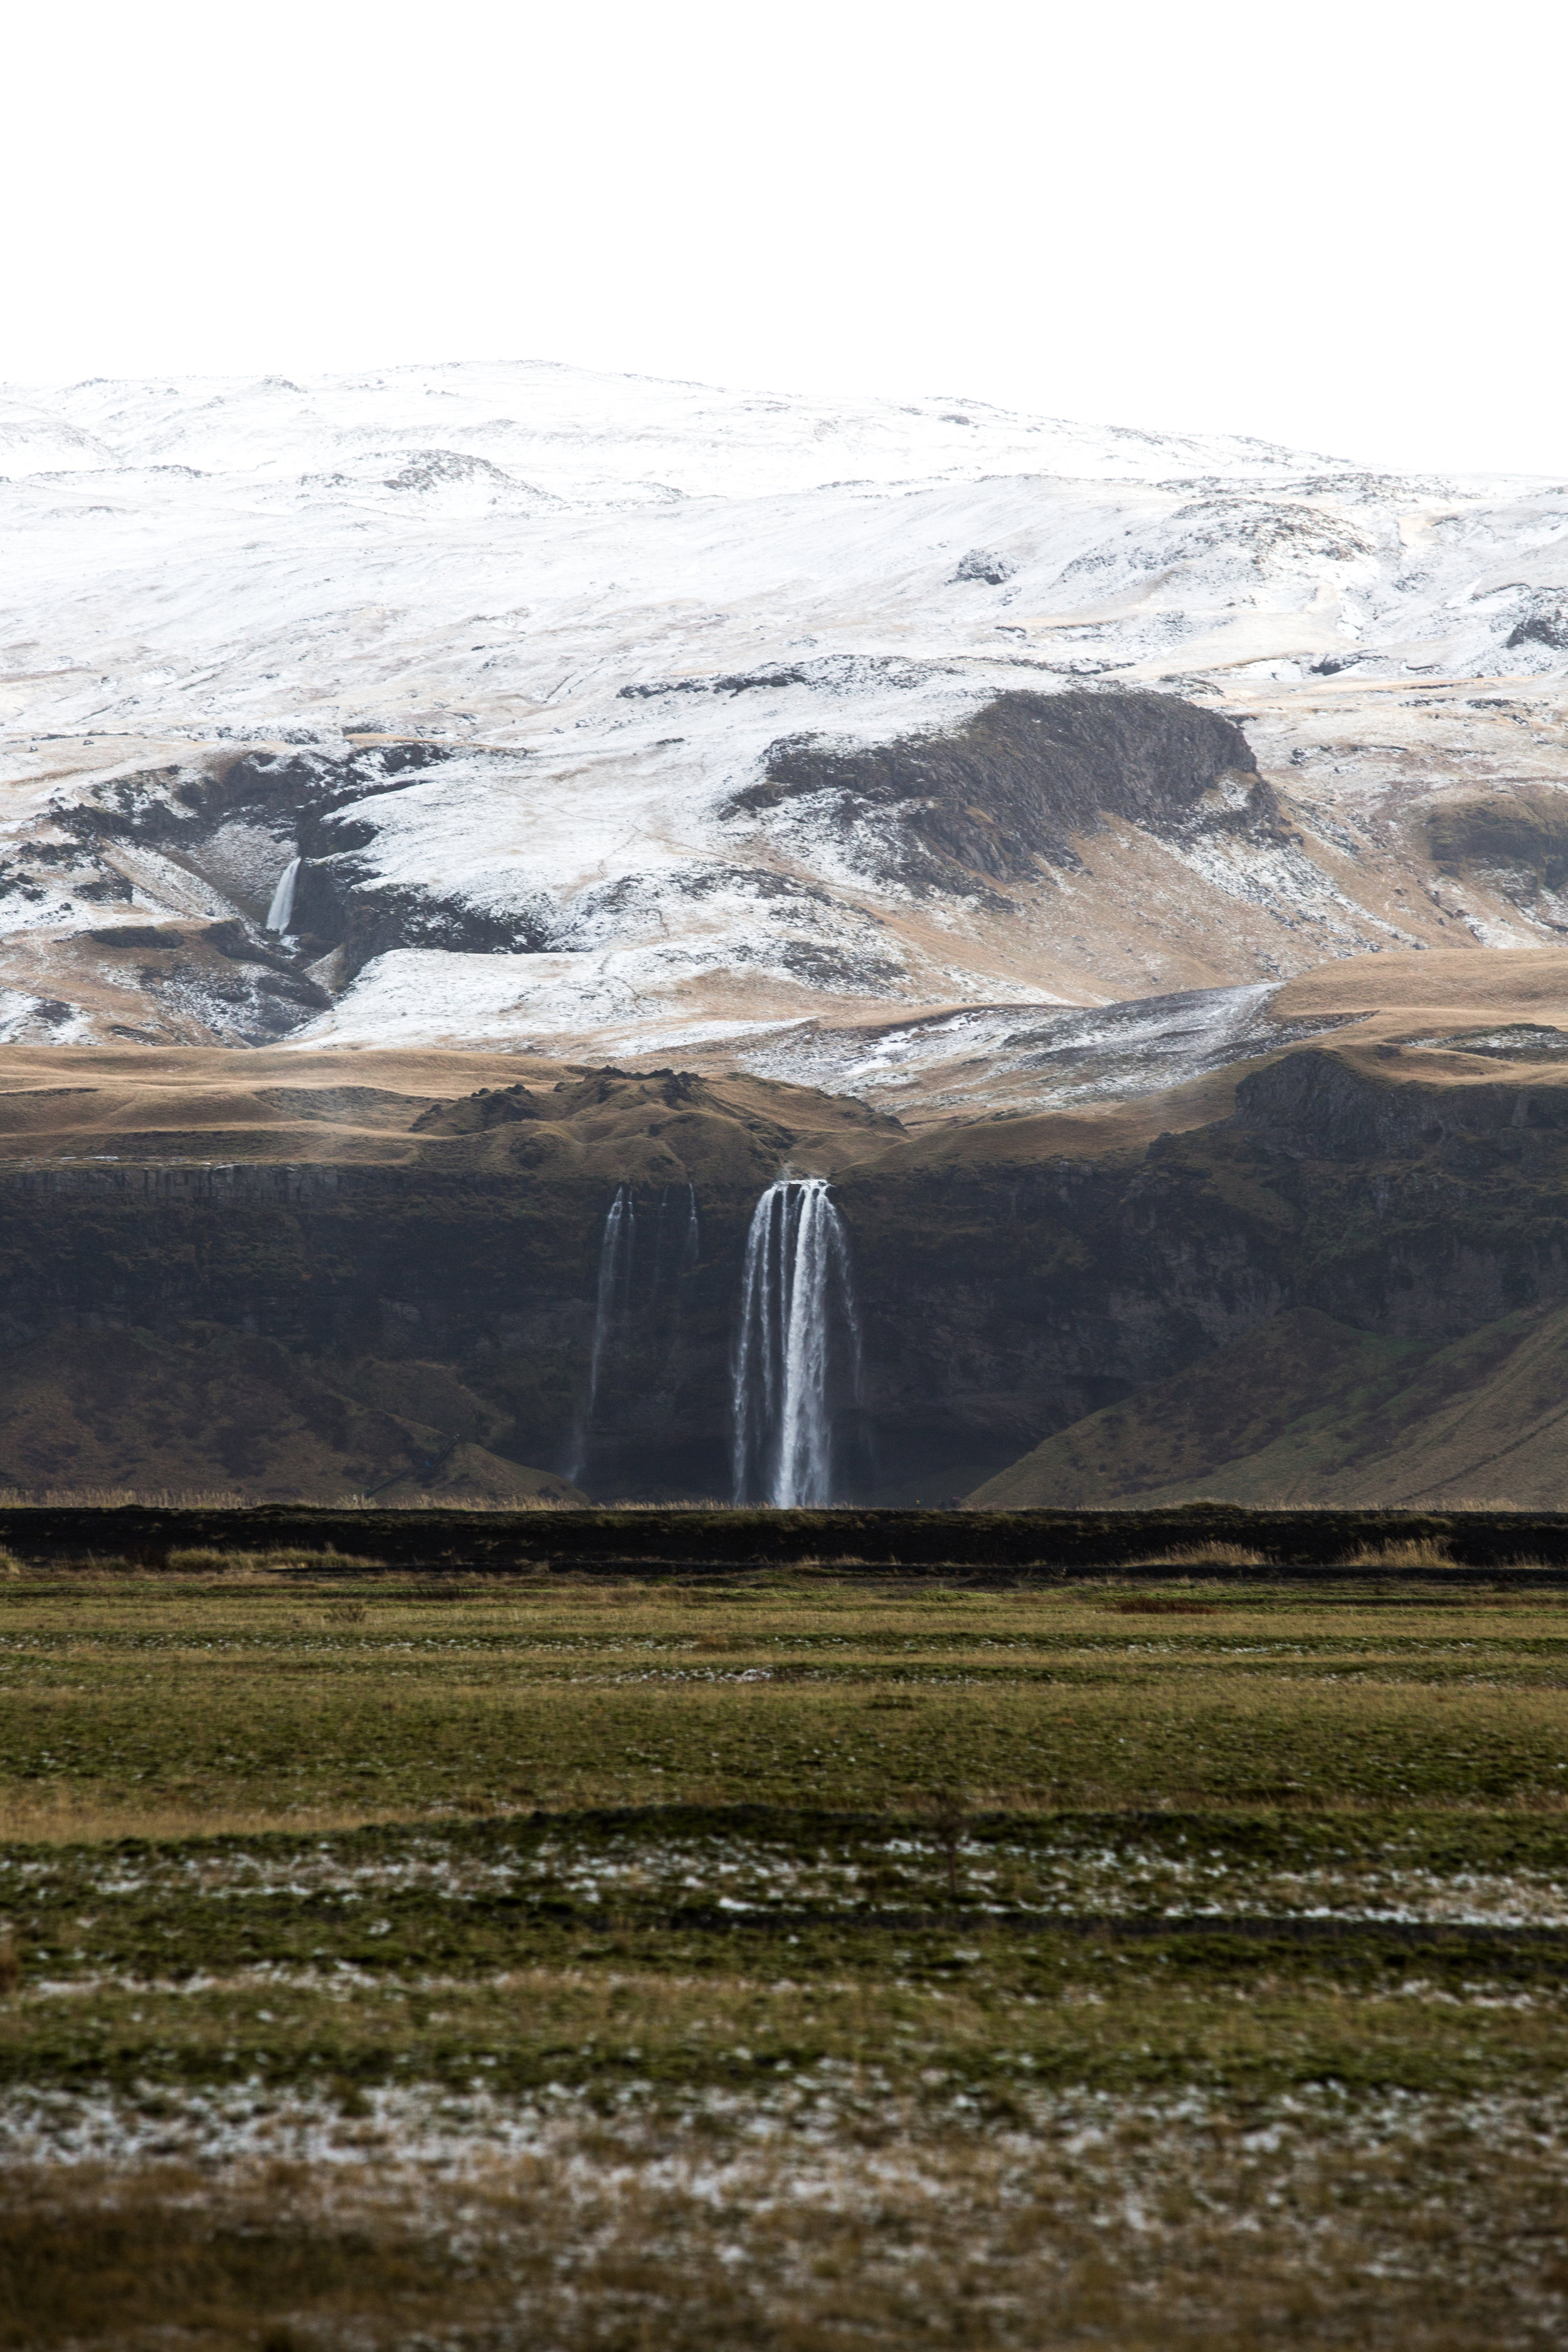 In the distance, Seljalandsfoss spills water from the glacier and rains of the day. Waterfalls are everywhere here, each worth of stopping for admiration. It wasn't quite snow, but bits of hail hit us on and off in the minutes trying to frame a decent photo from afar.